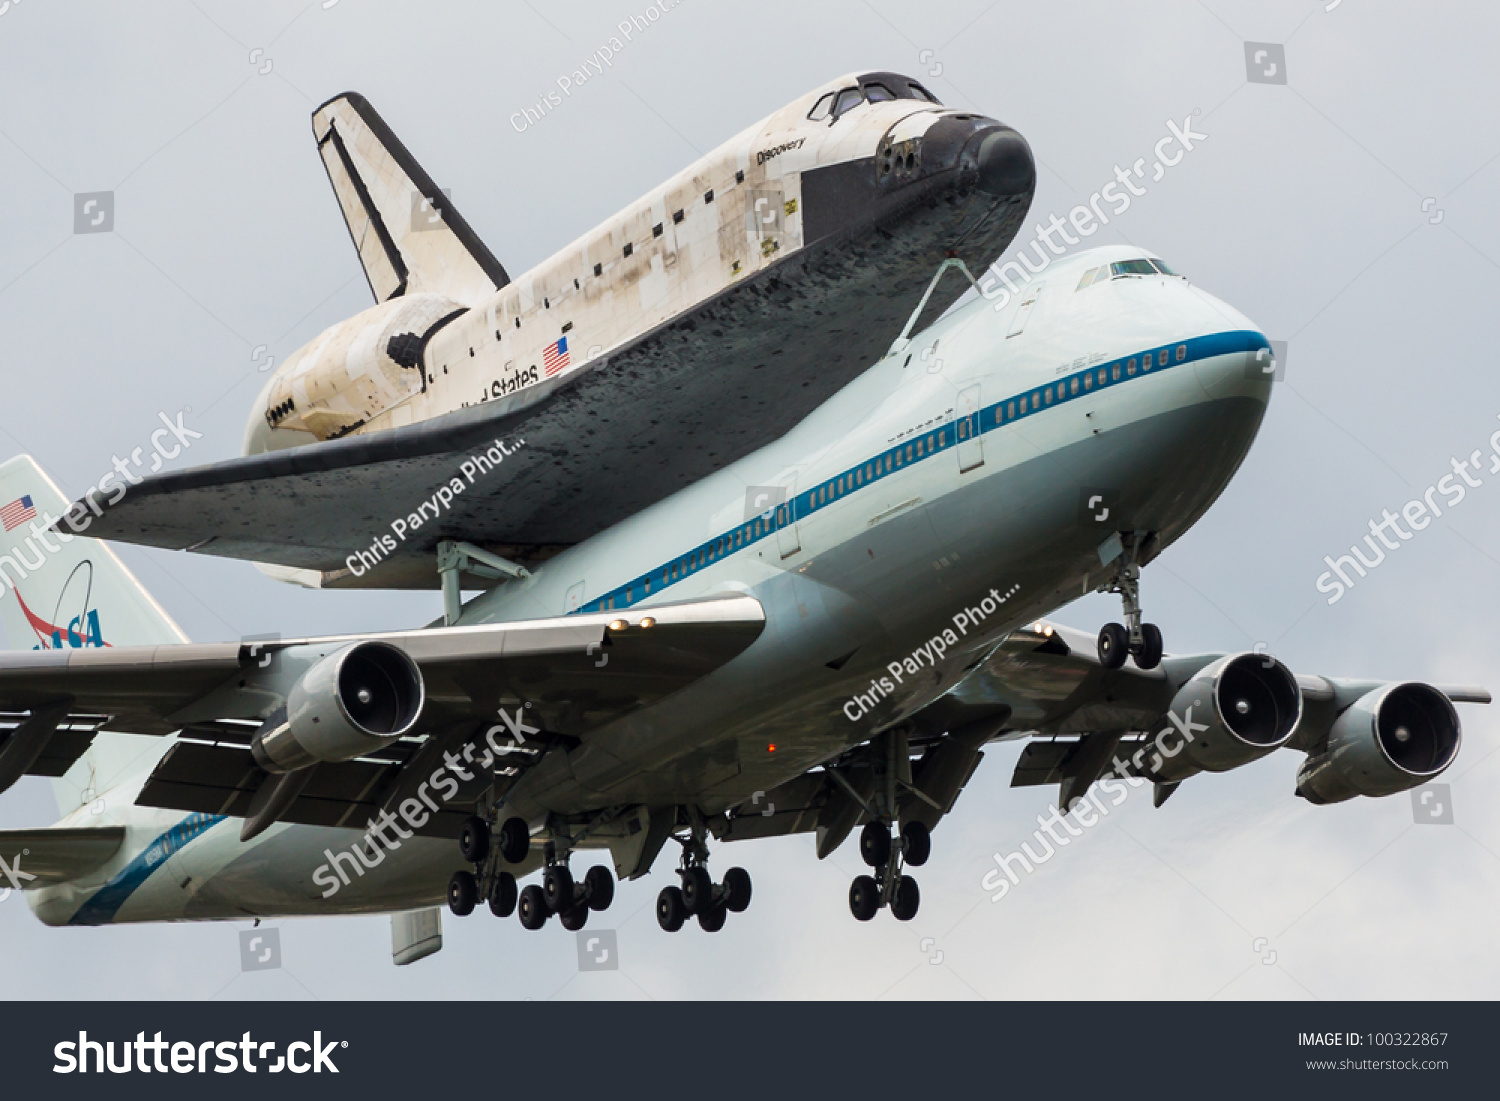 space shuttle discovery at dulles airport - photo #13